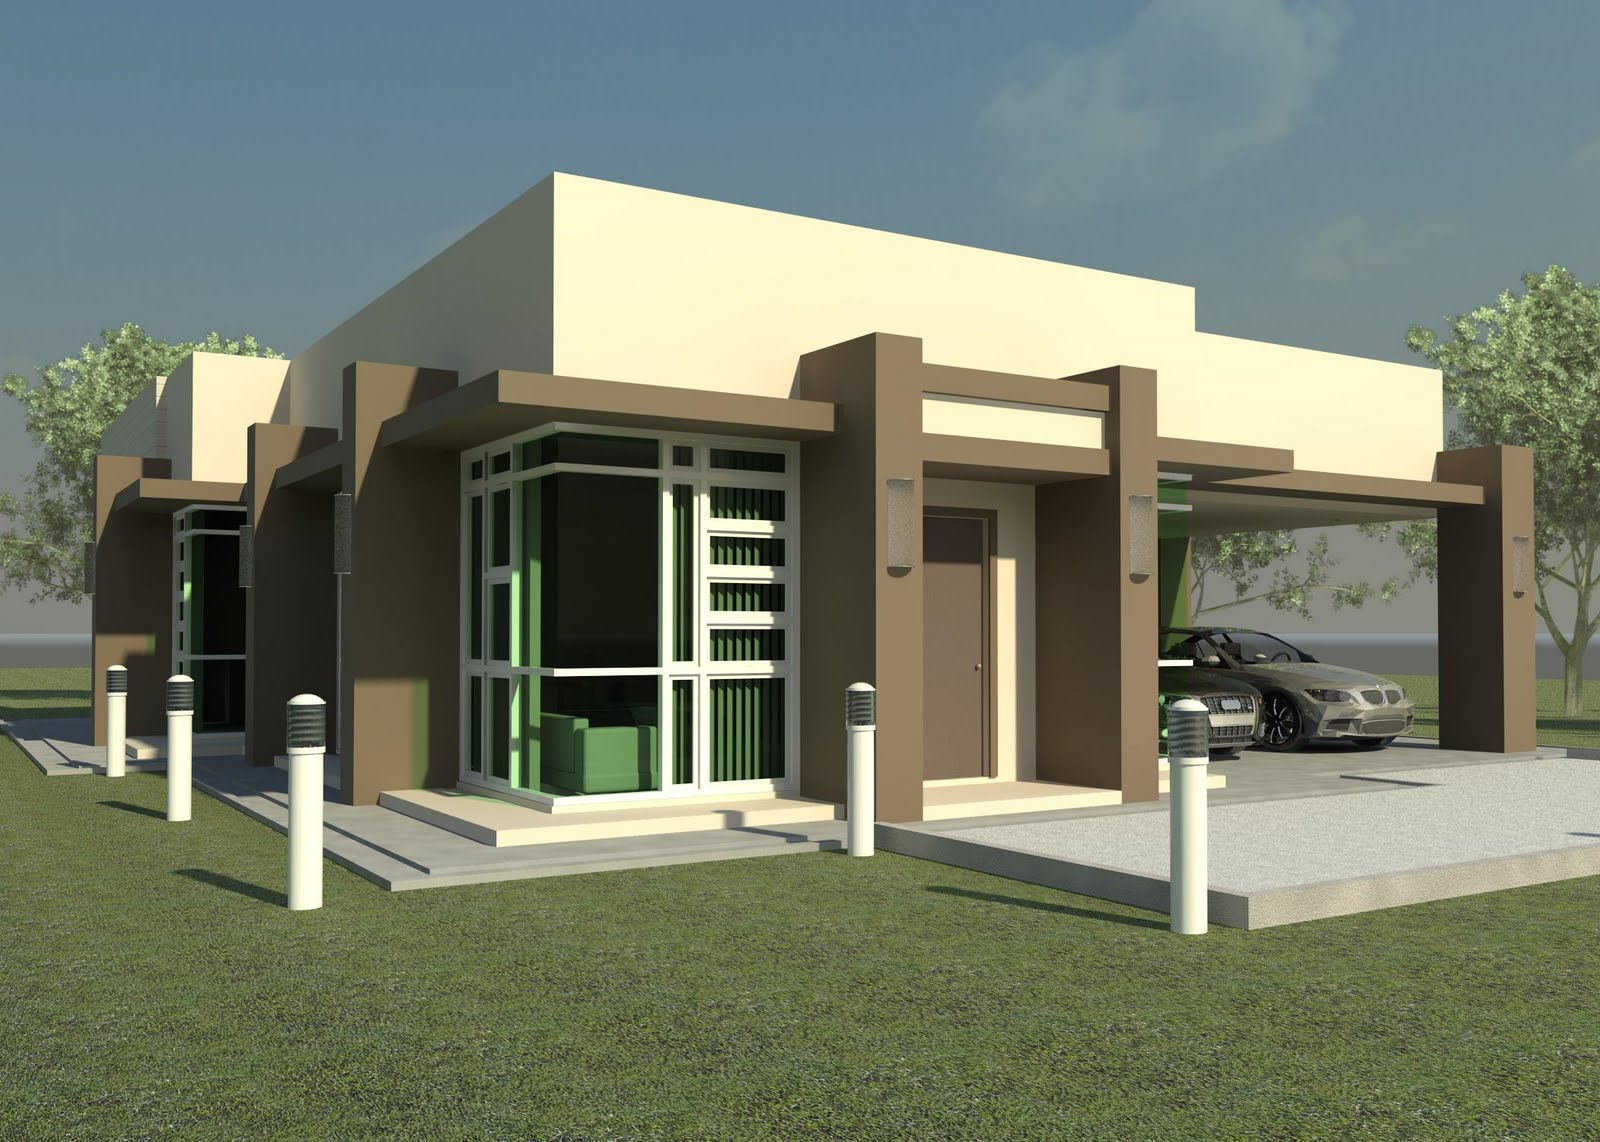 ... designs latest.: Modern homes beautiful single storey designs ideas